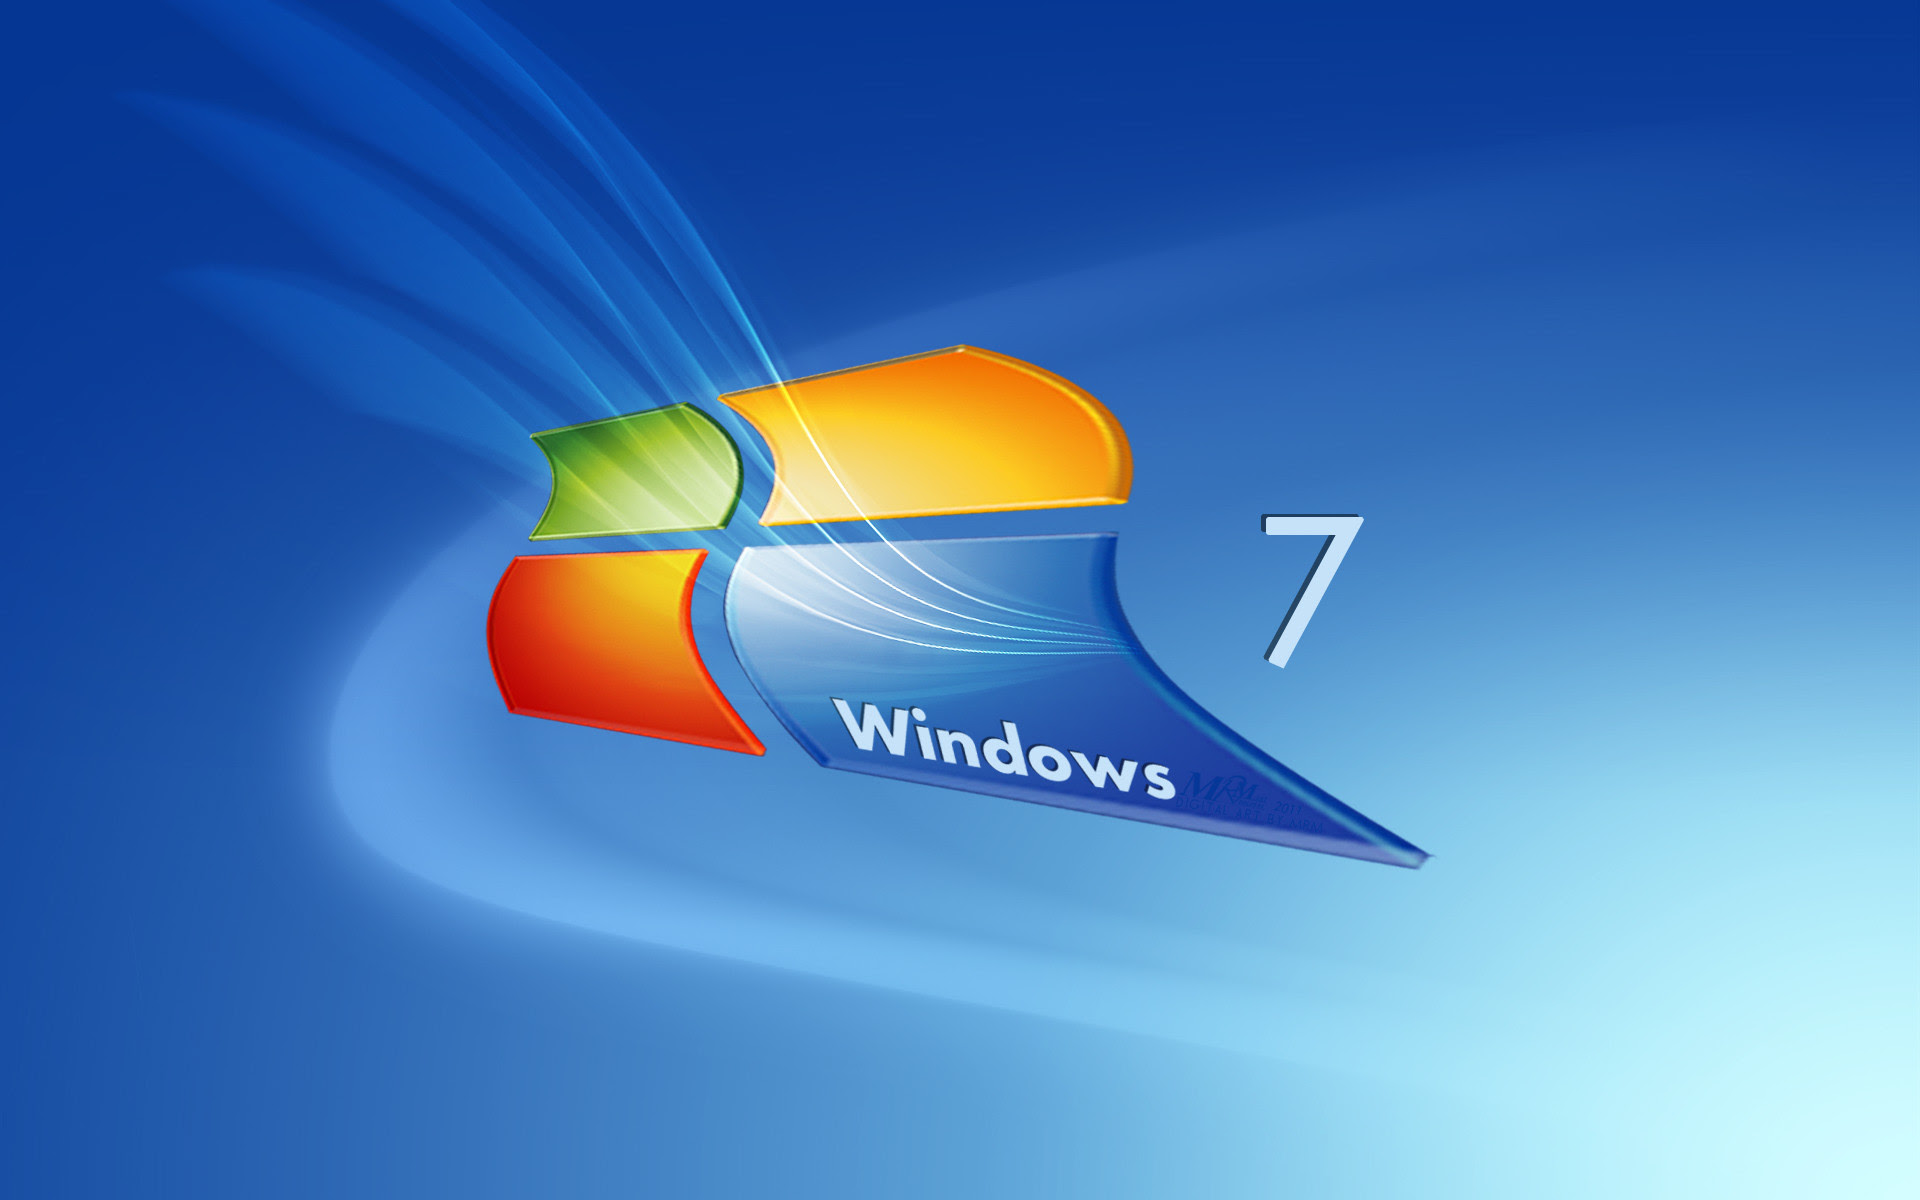 Windows Desktop Backgrounds 3d Desktop Backgrounds For